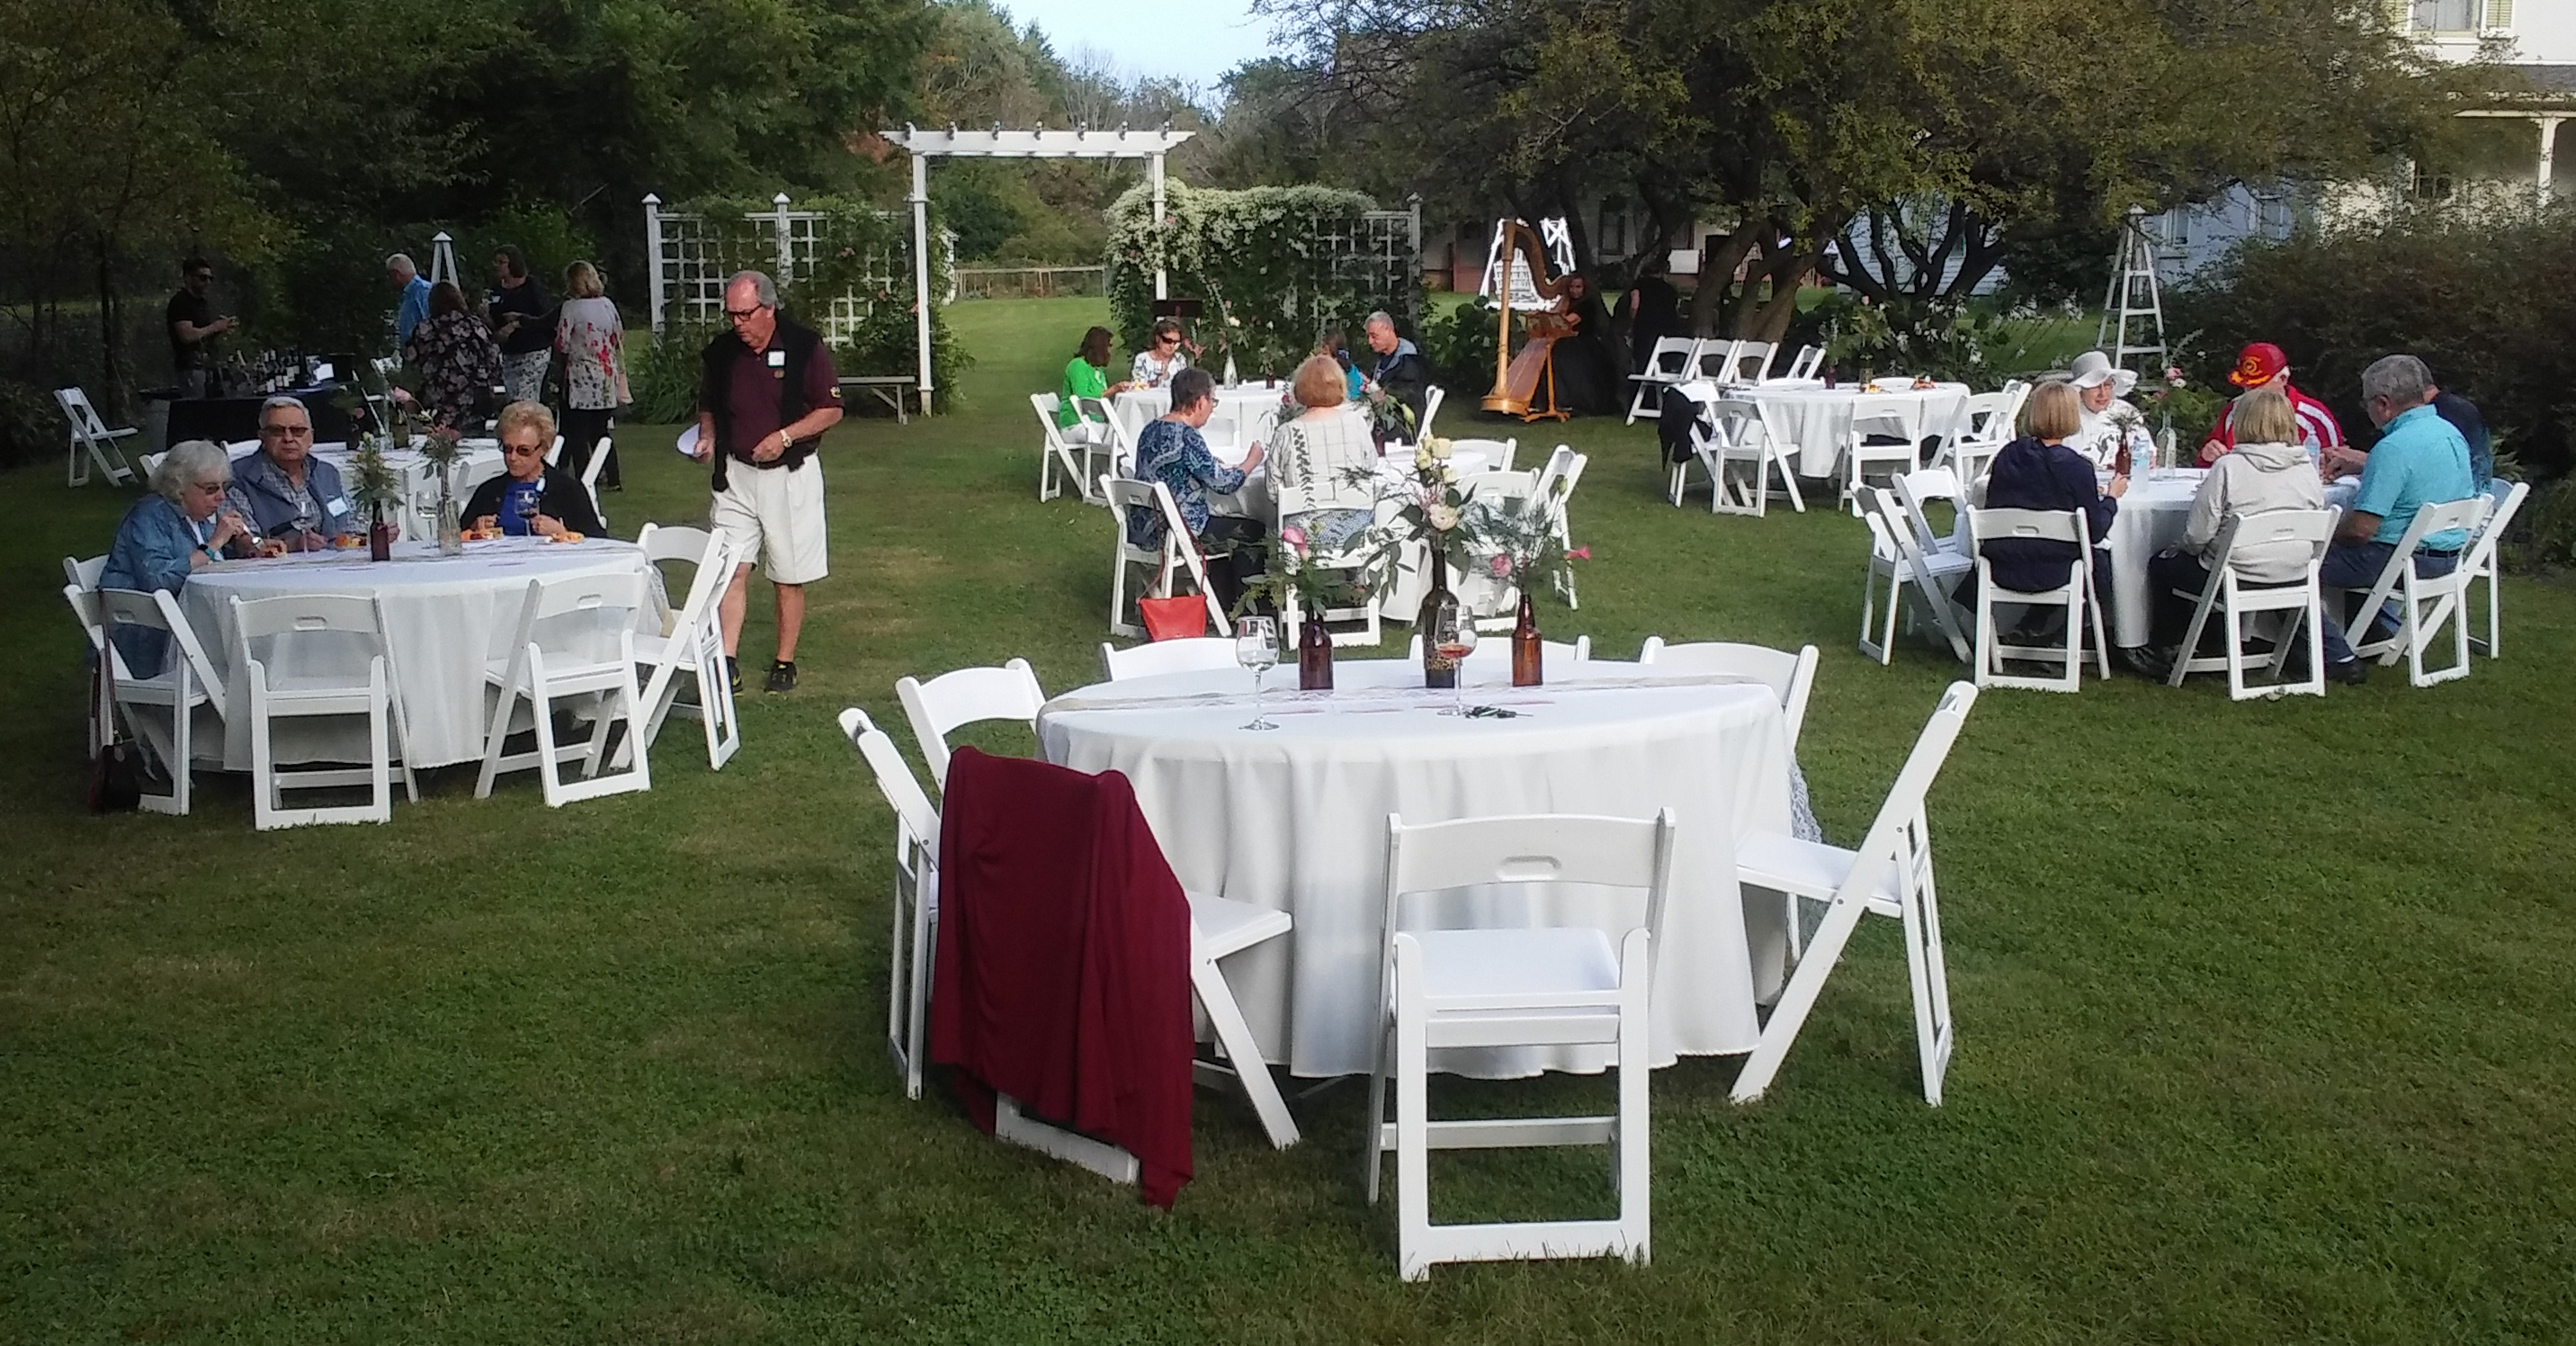 chair cover rentals rockford il casters for office chairs on carpet wedding venue midway village museum moonlight garden